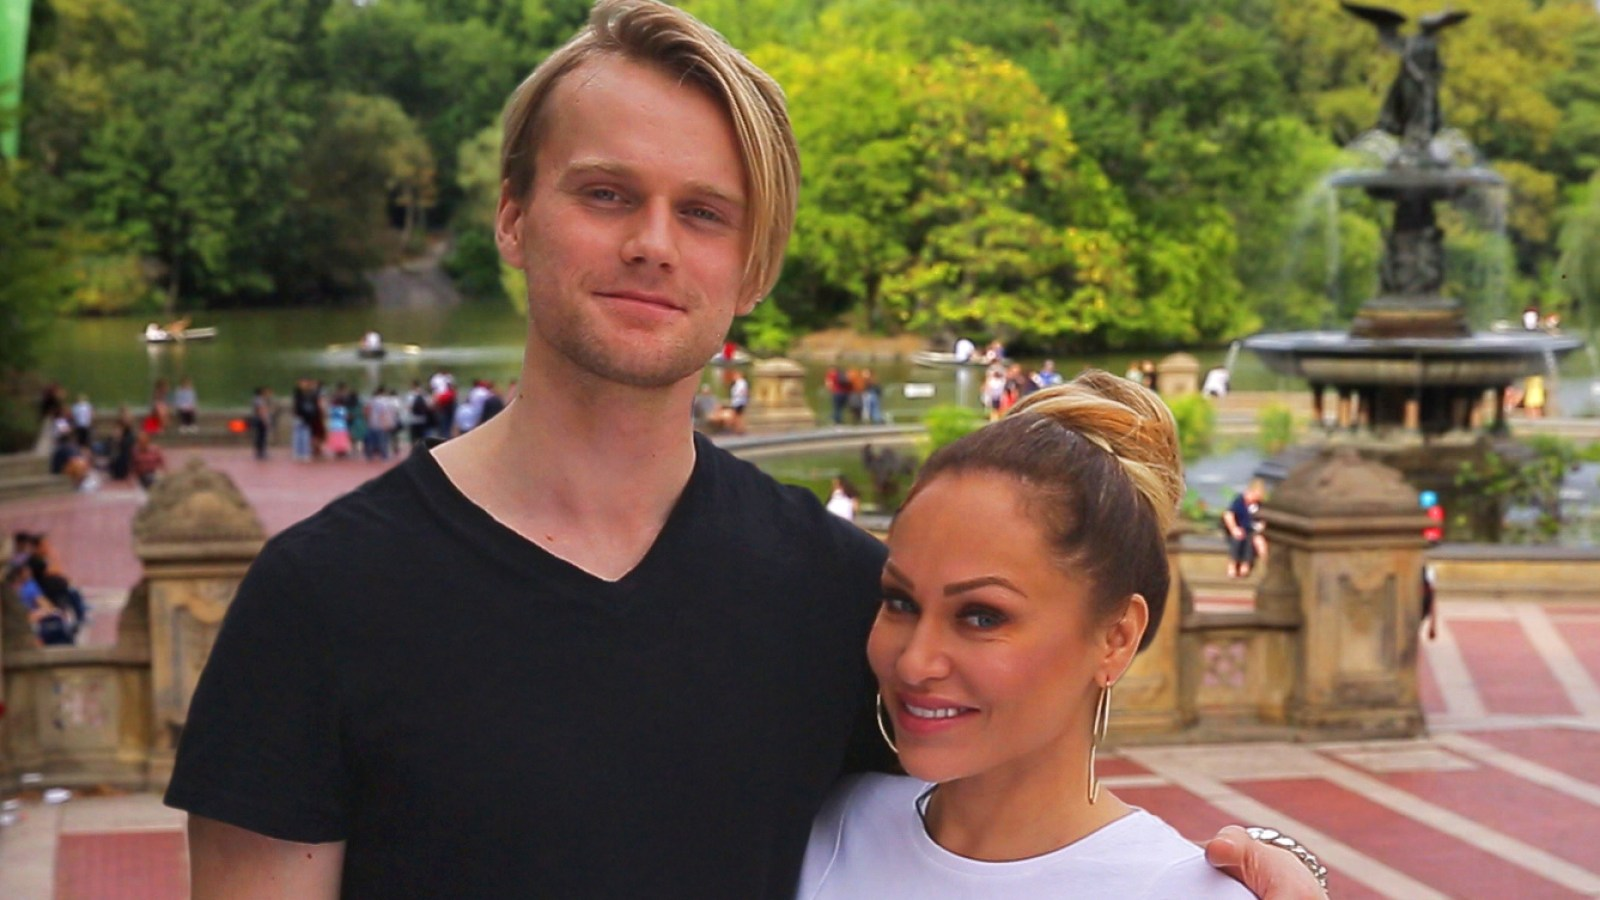 90 Day Fiance: Before the 90 Days' Recap: Jesse and Darcey Split